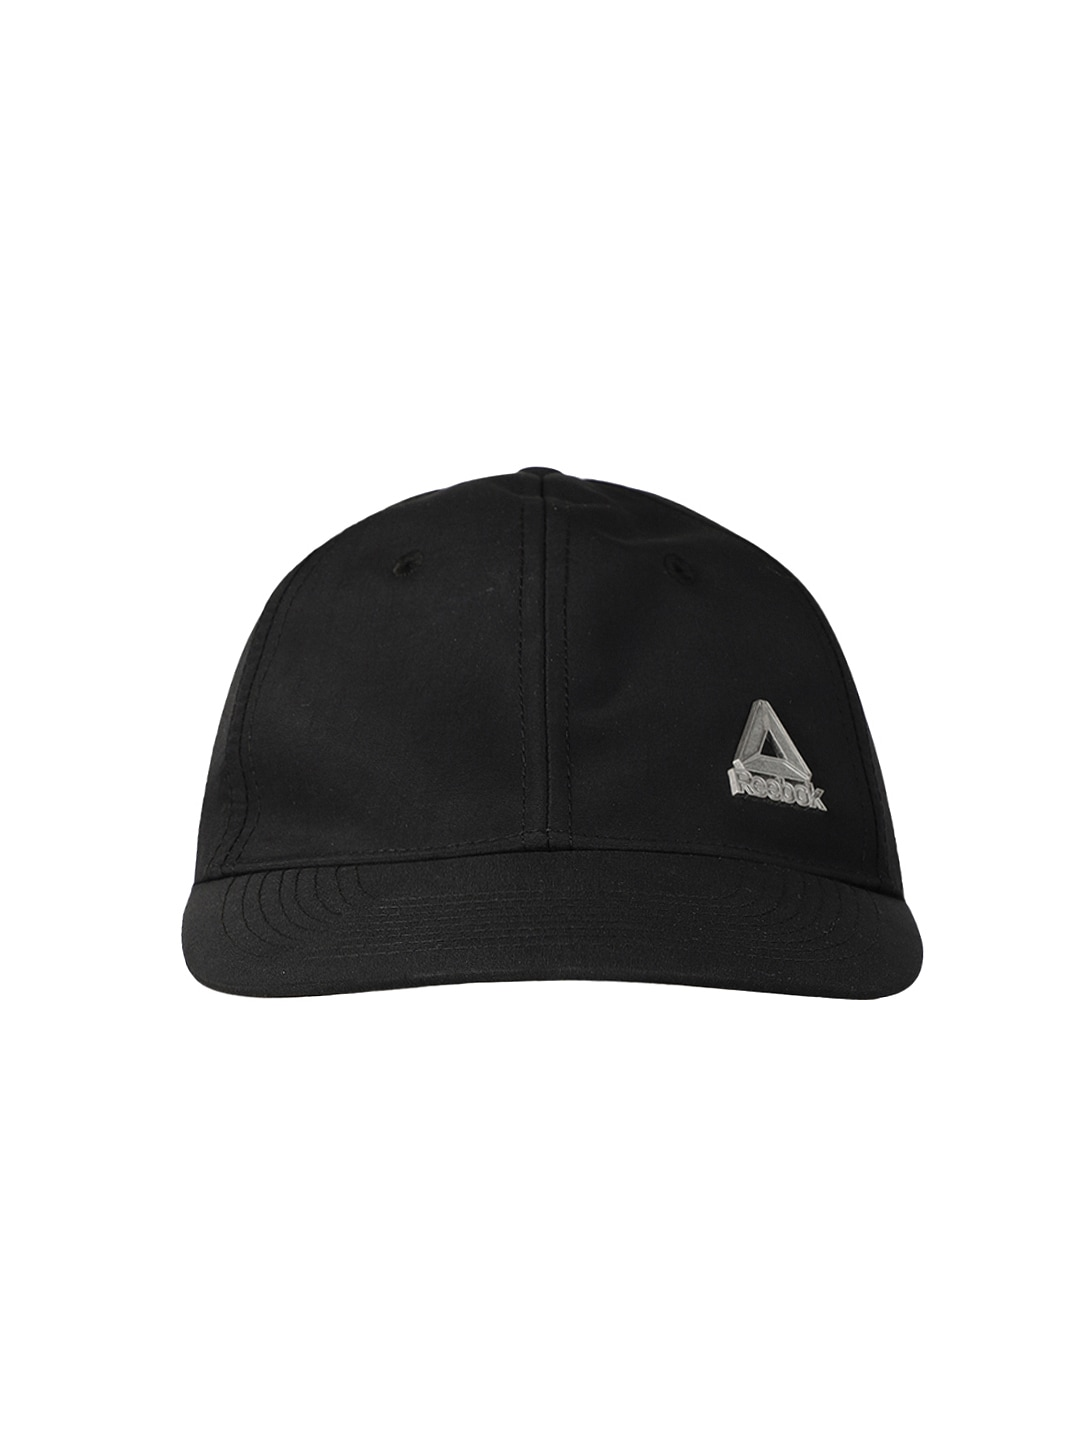 1f8b83efbed Hats   Caps For Men - Shop Mens Caps   Hats Online at best price ...